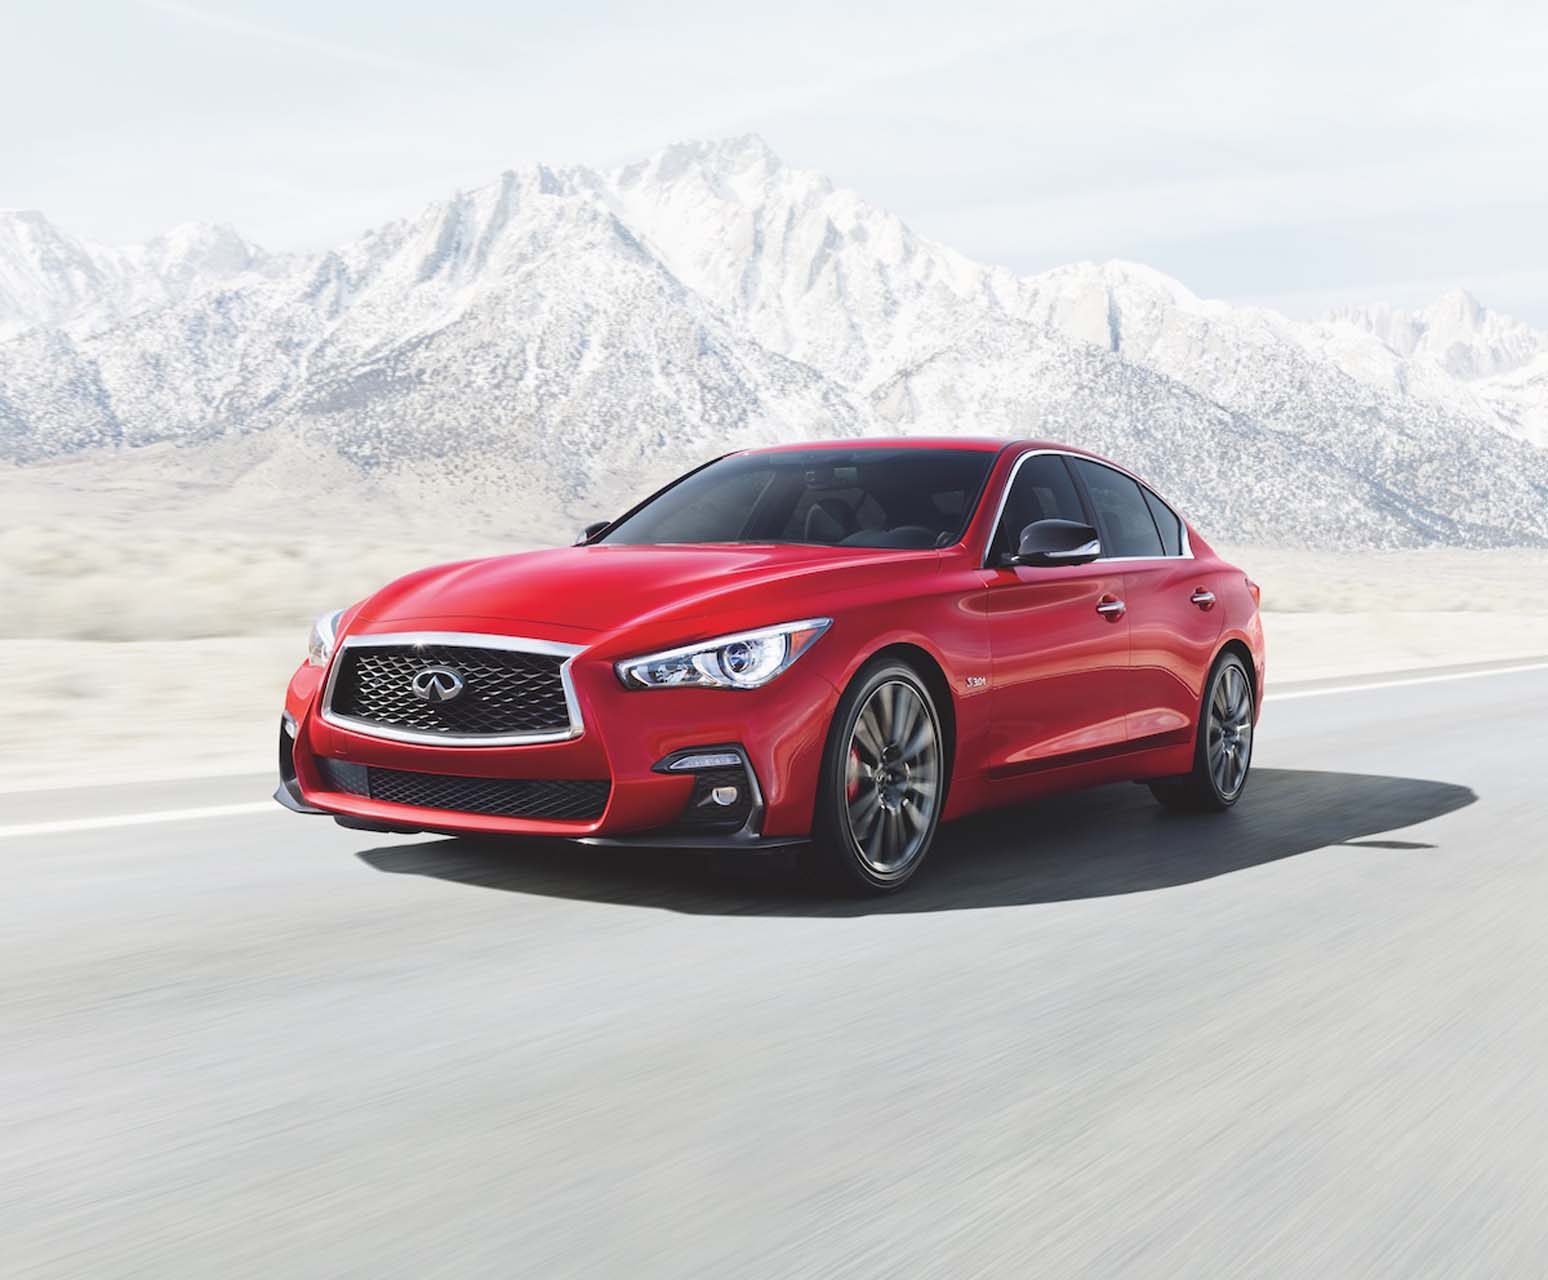 2019 INFINITI Q50 Review, Ratings, Specs, Prices, and Photos ... on